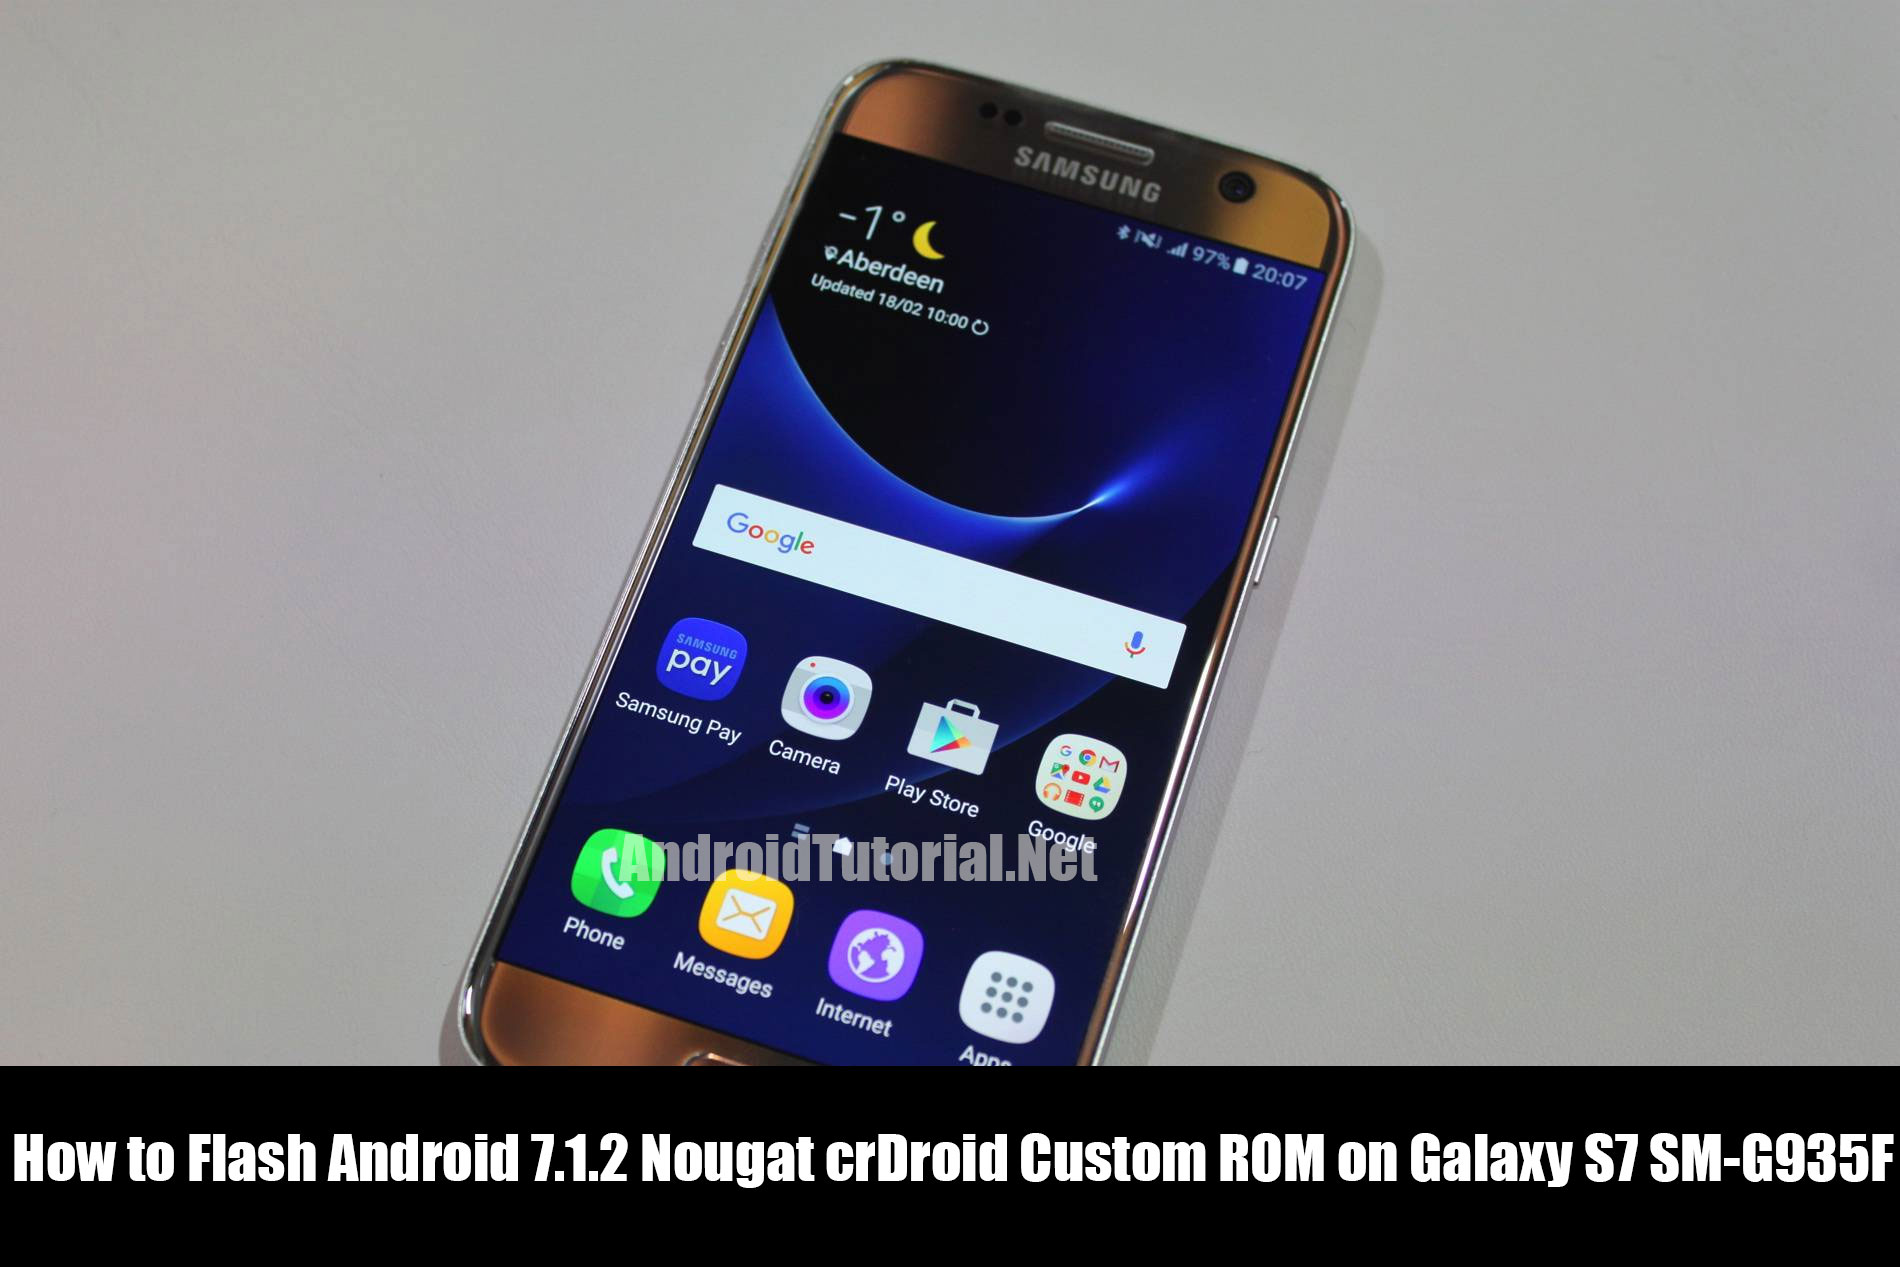 How to Flash Android 7.1.2 Nougat crDroid Custom ROM on Galaxy S7 SM-G935F